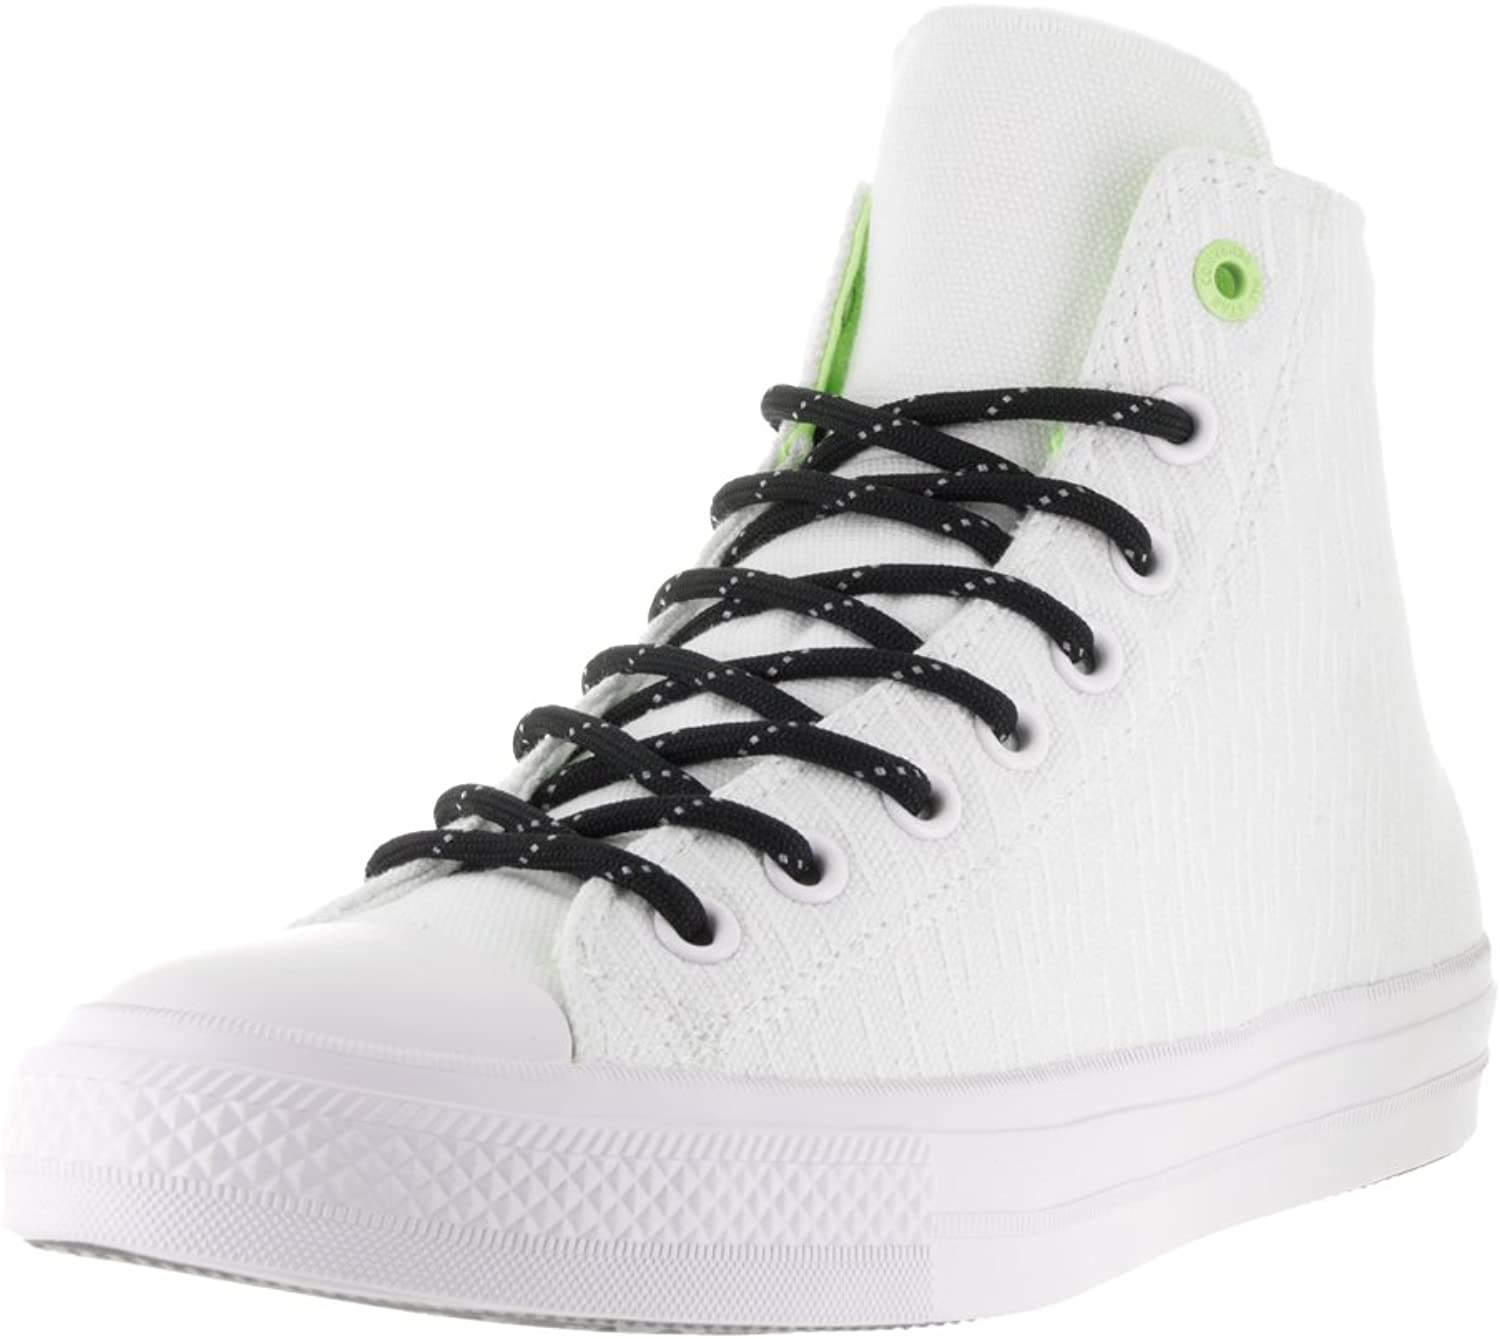 Converse Unisex Chuck Taylor All Star II Hi Casual shoes